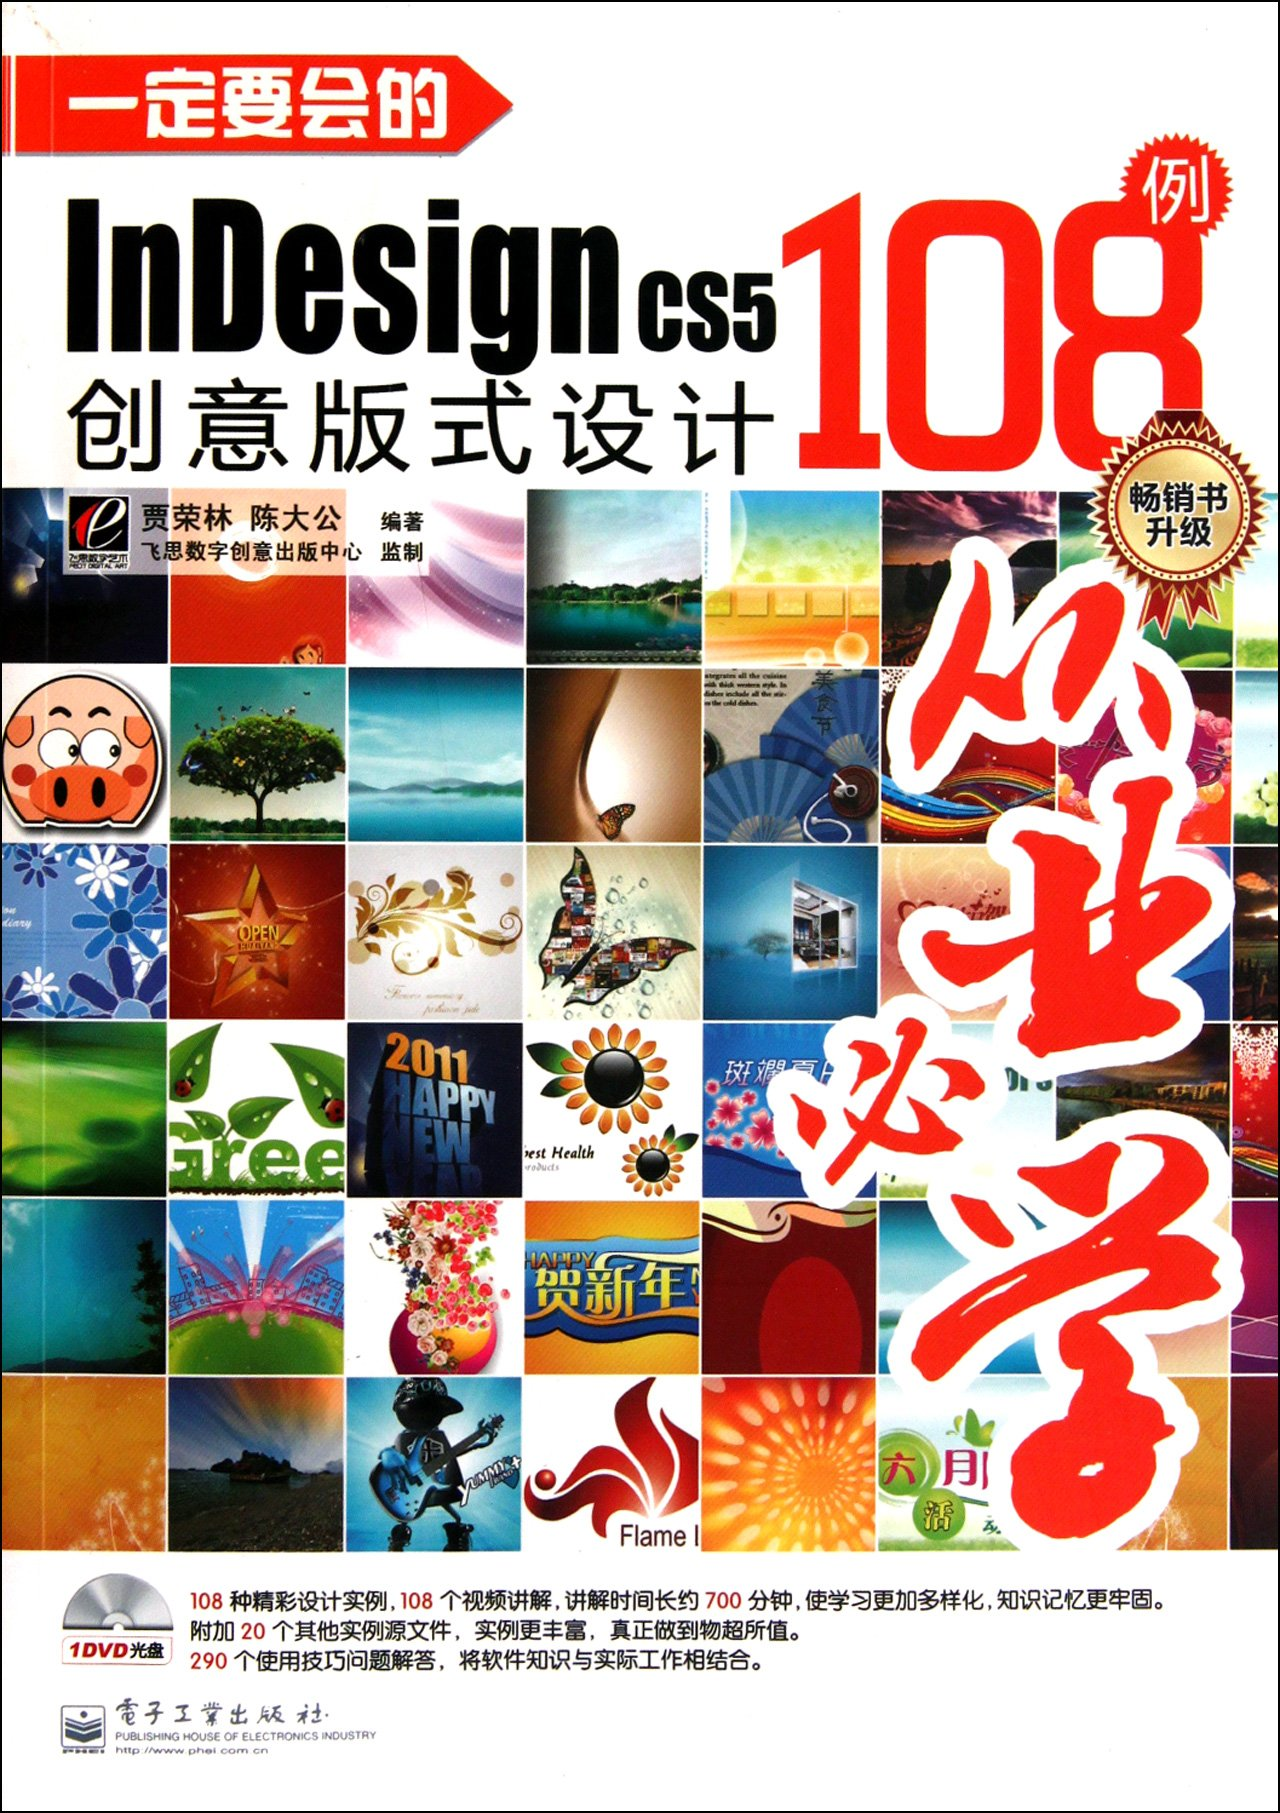 Download Must be of Indesign cs5 creative layout design 108 cases practitioners will learn pdf